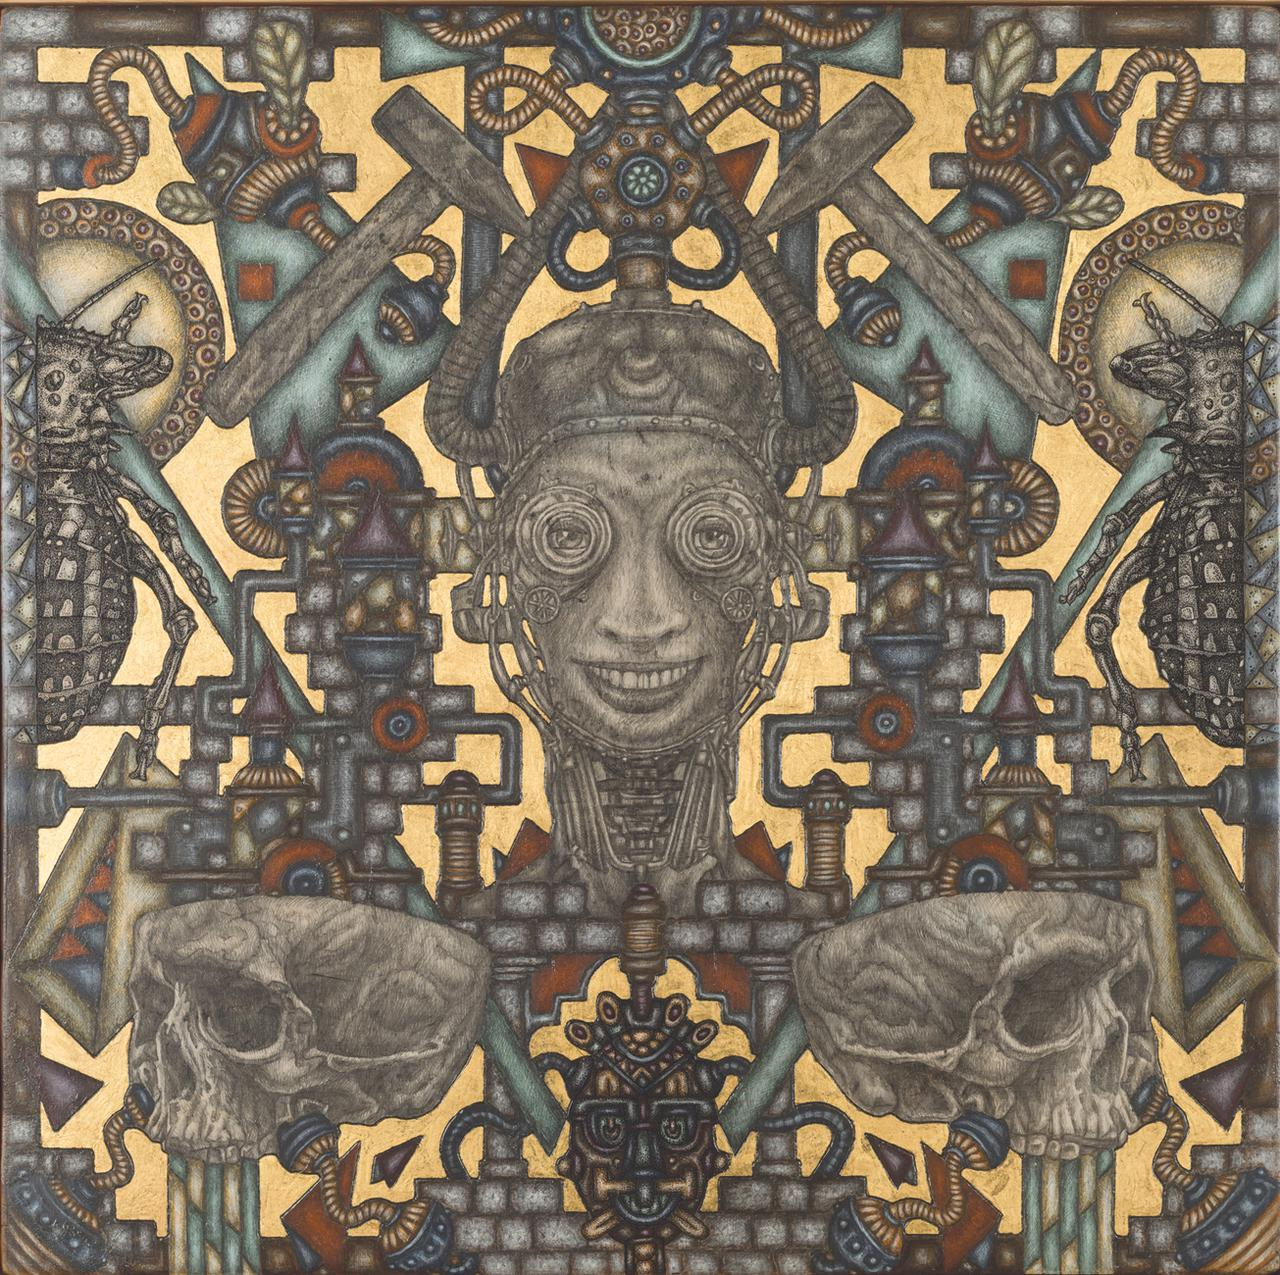 Homo Faber's Maze, 35.5 cm x 35.5 cm, acrylics, pencil, ink and gold 22K, on wood, 2018